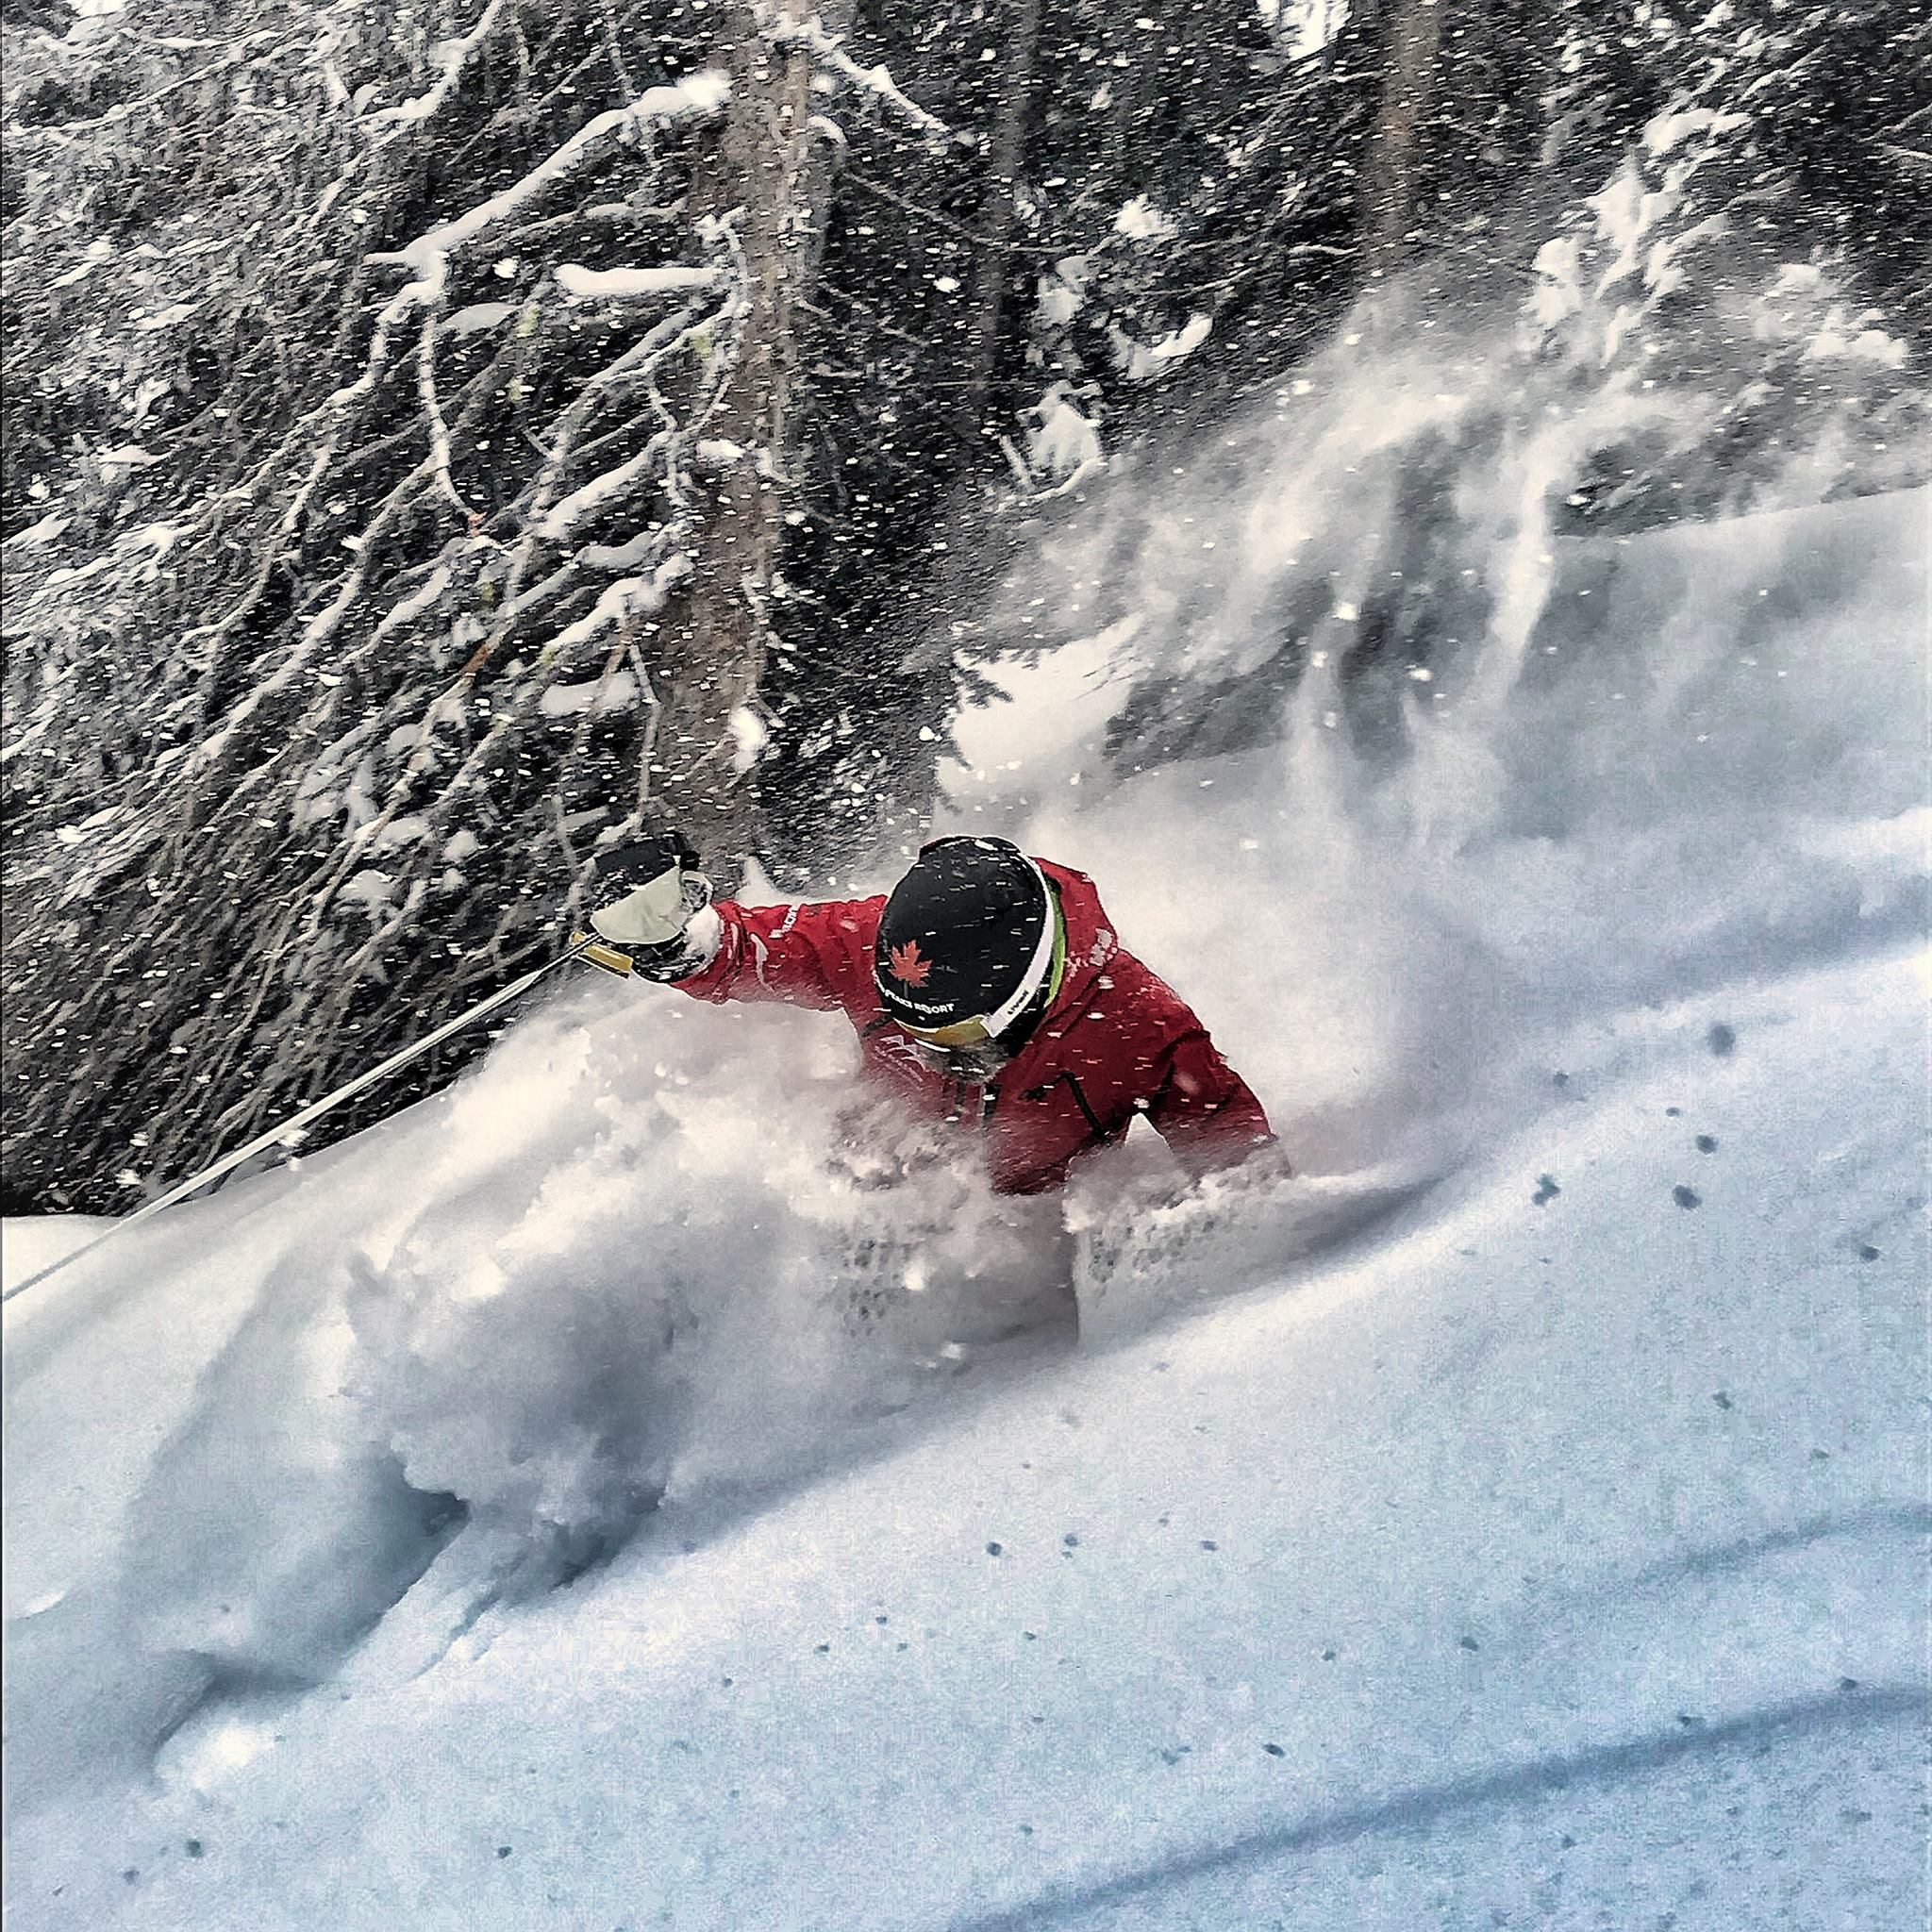 New in 2019/2020 - professionally guided Sun Peaks heli-ski and cat-ski day trips